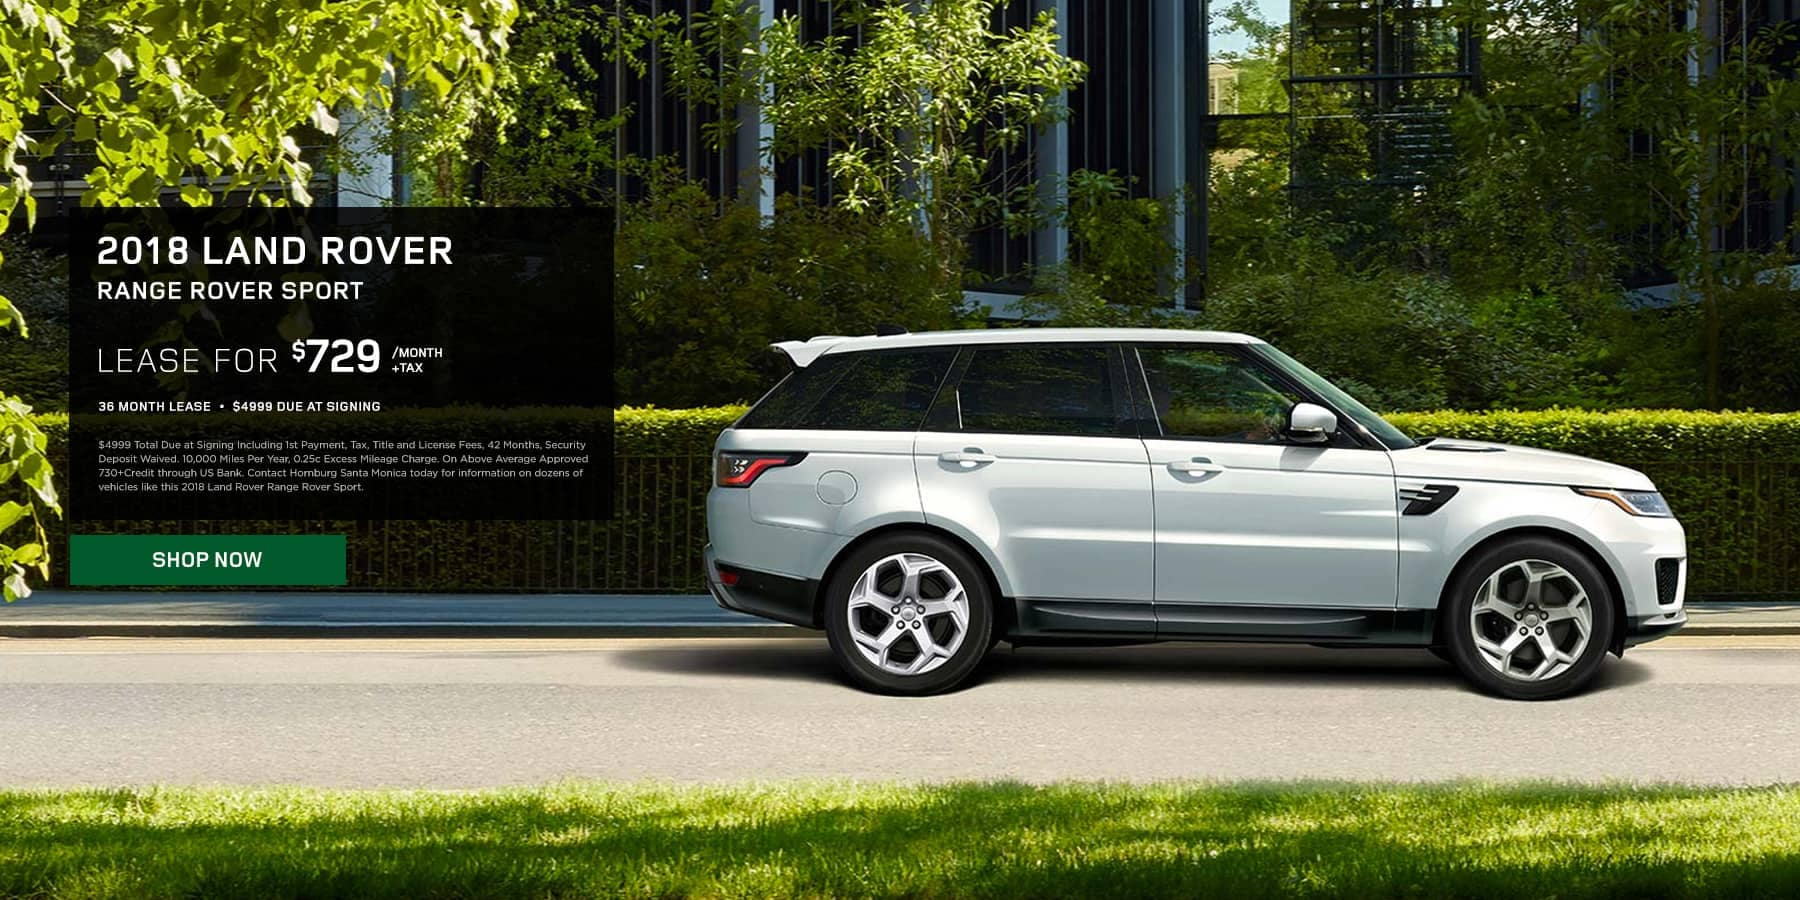 Cheap Lease Deals Range Rover Sport | Lamoureph Blog